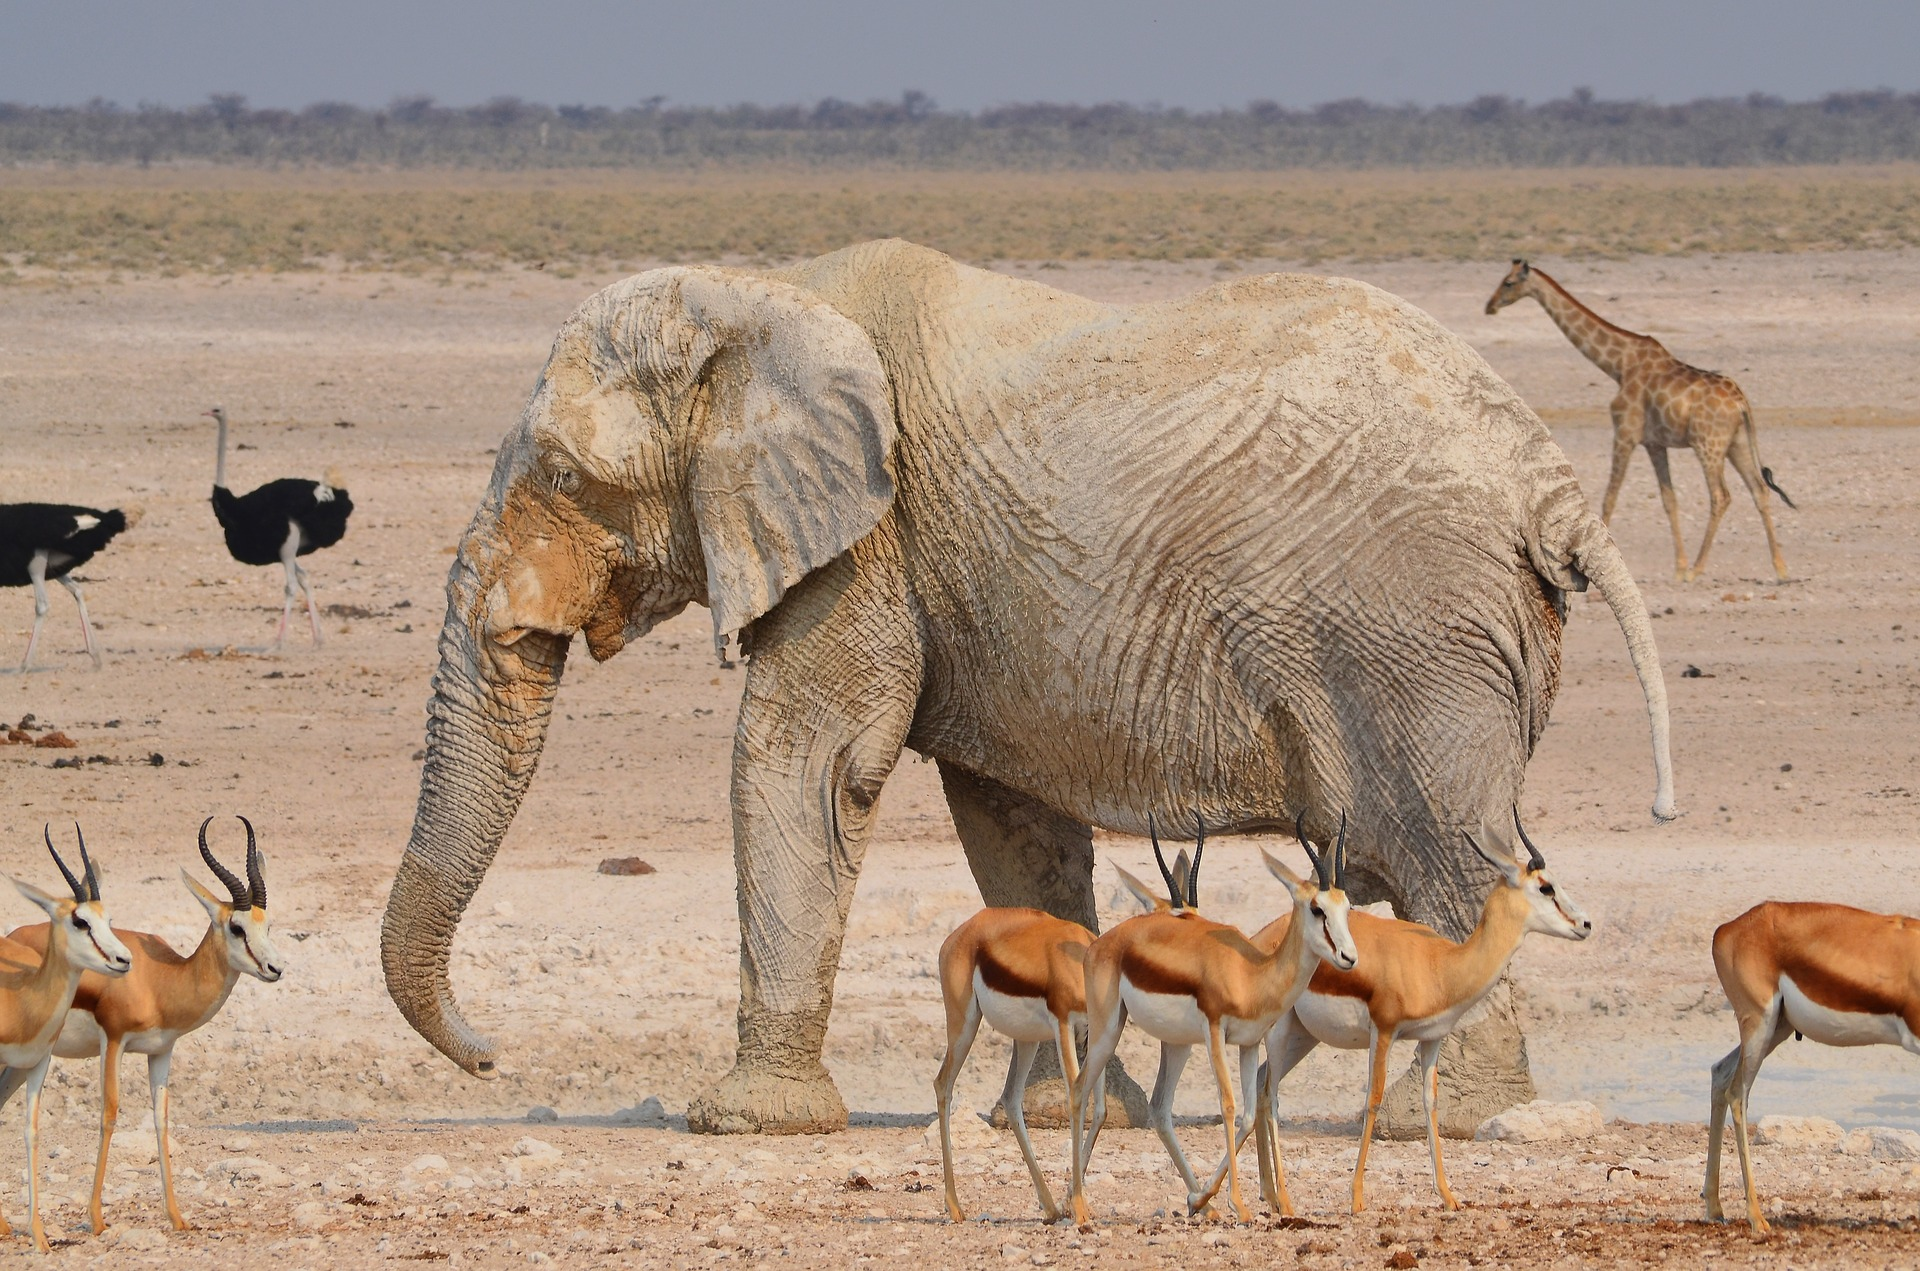 Elephant, giraffe and ostrich in Etosha National Park in Namibia